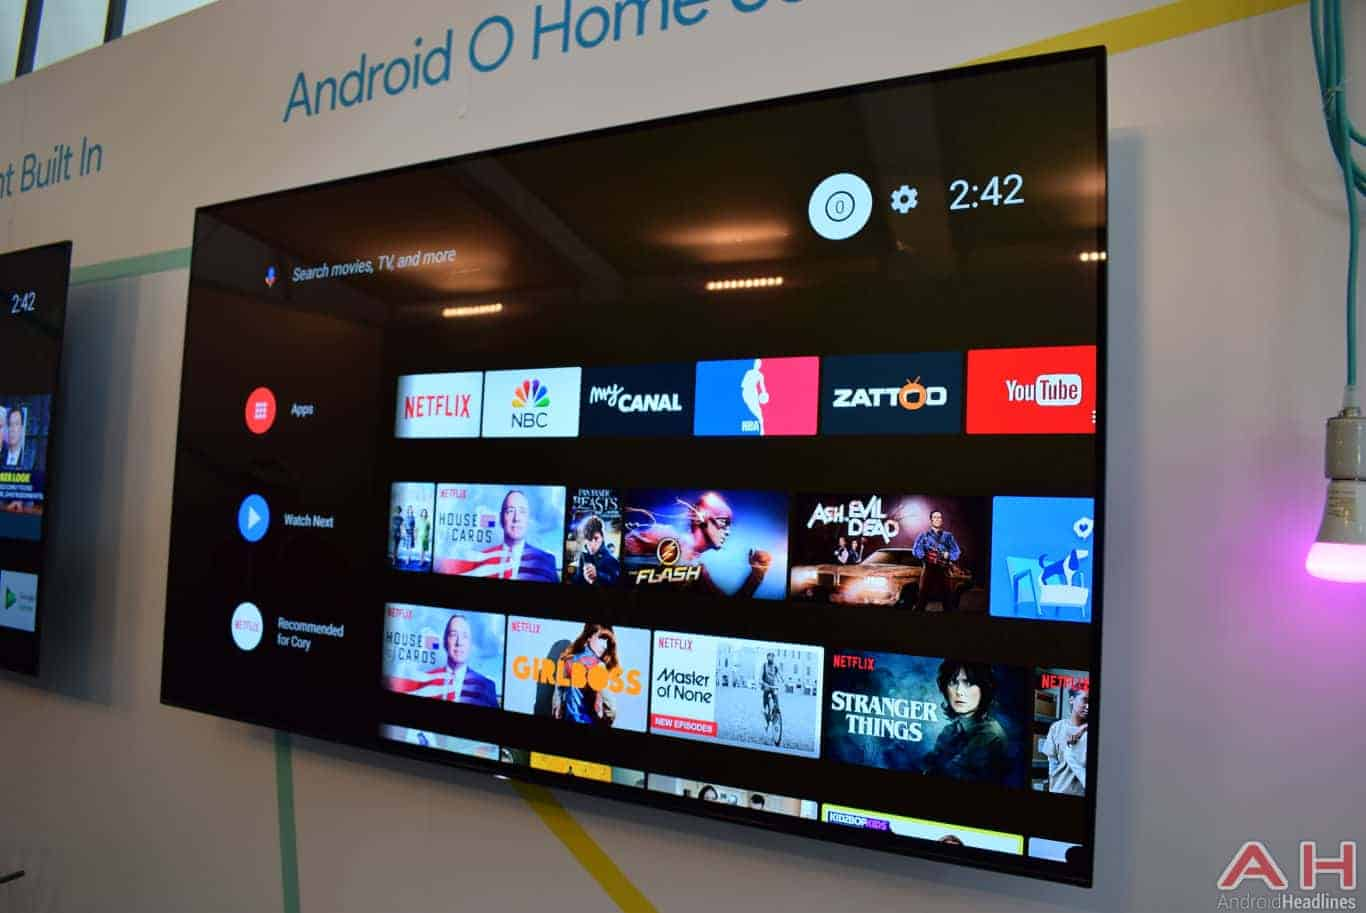 A Closer Look At Android TV's New Android O Interface ...